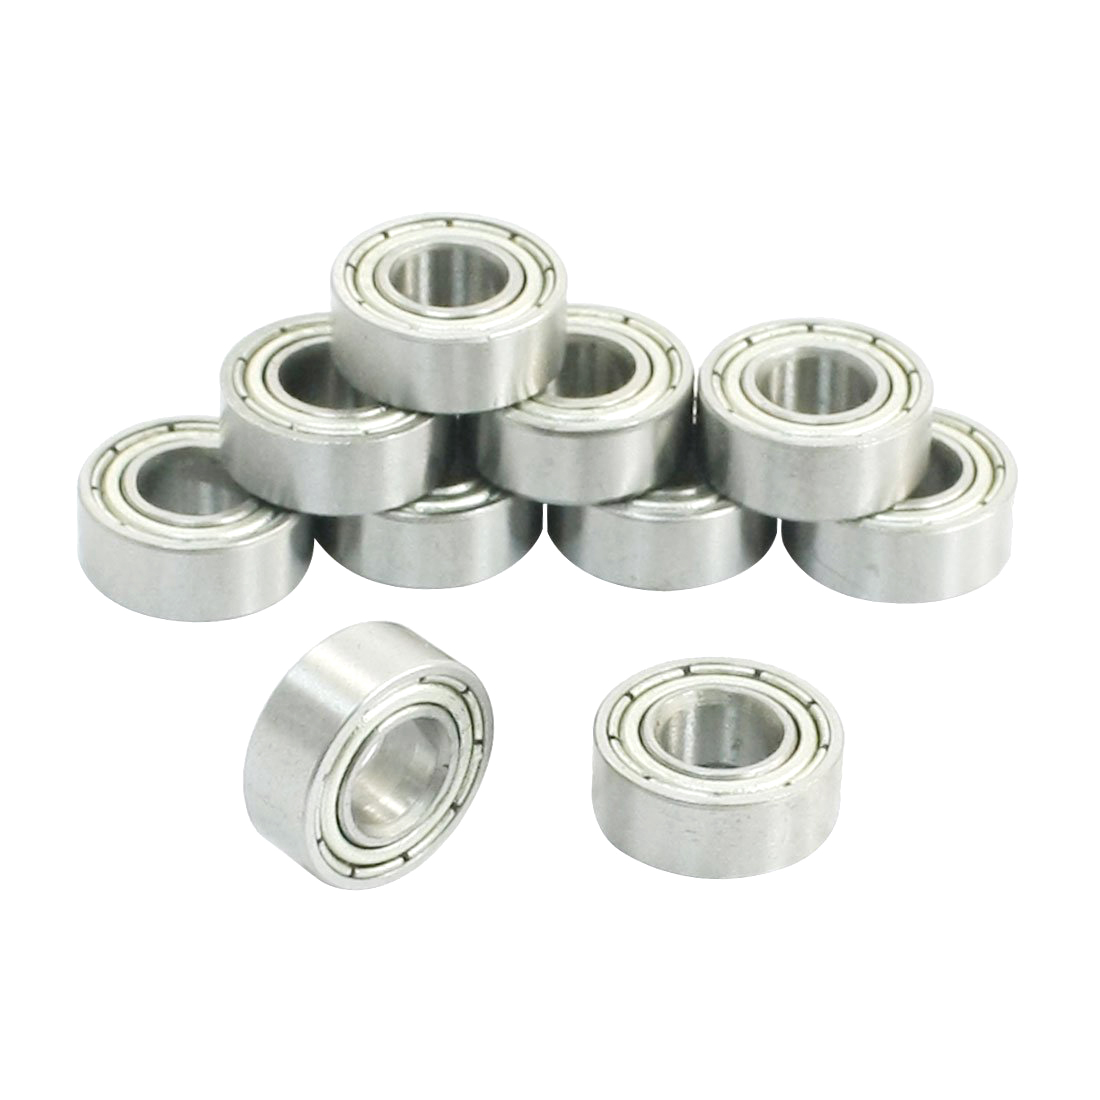 CNIM Hot 6mm x 13mm x 5mm Miniature Deep Groove Radial Ball Bearings 686Z 10Pcs цена